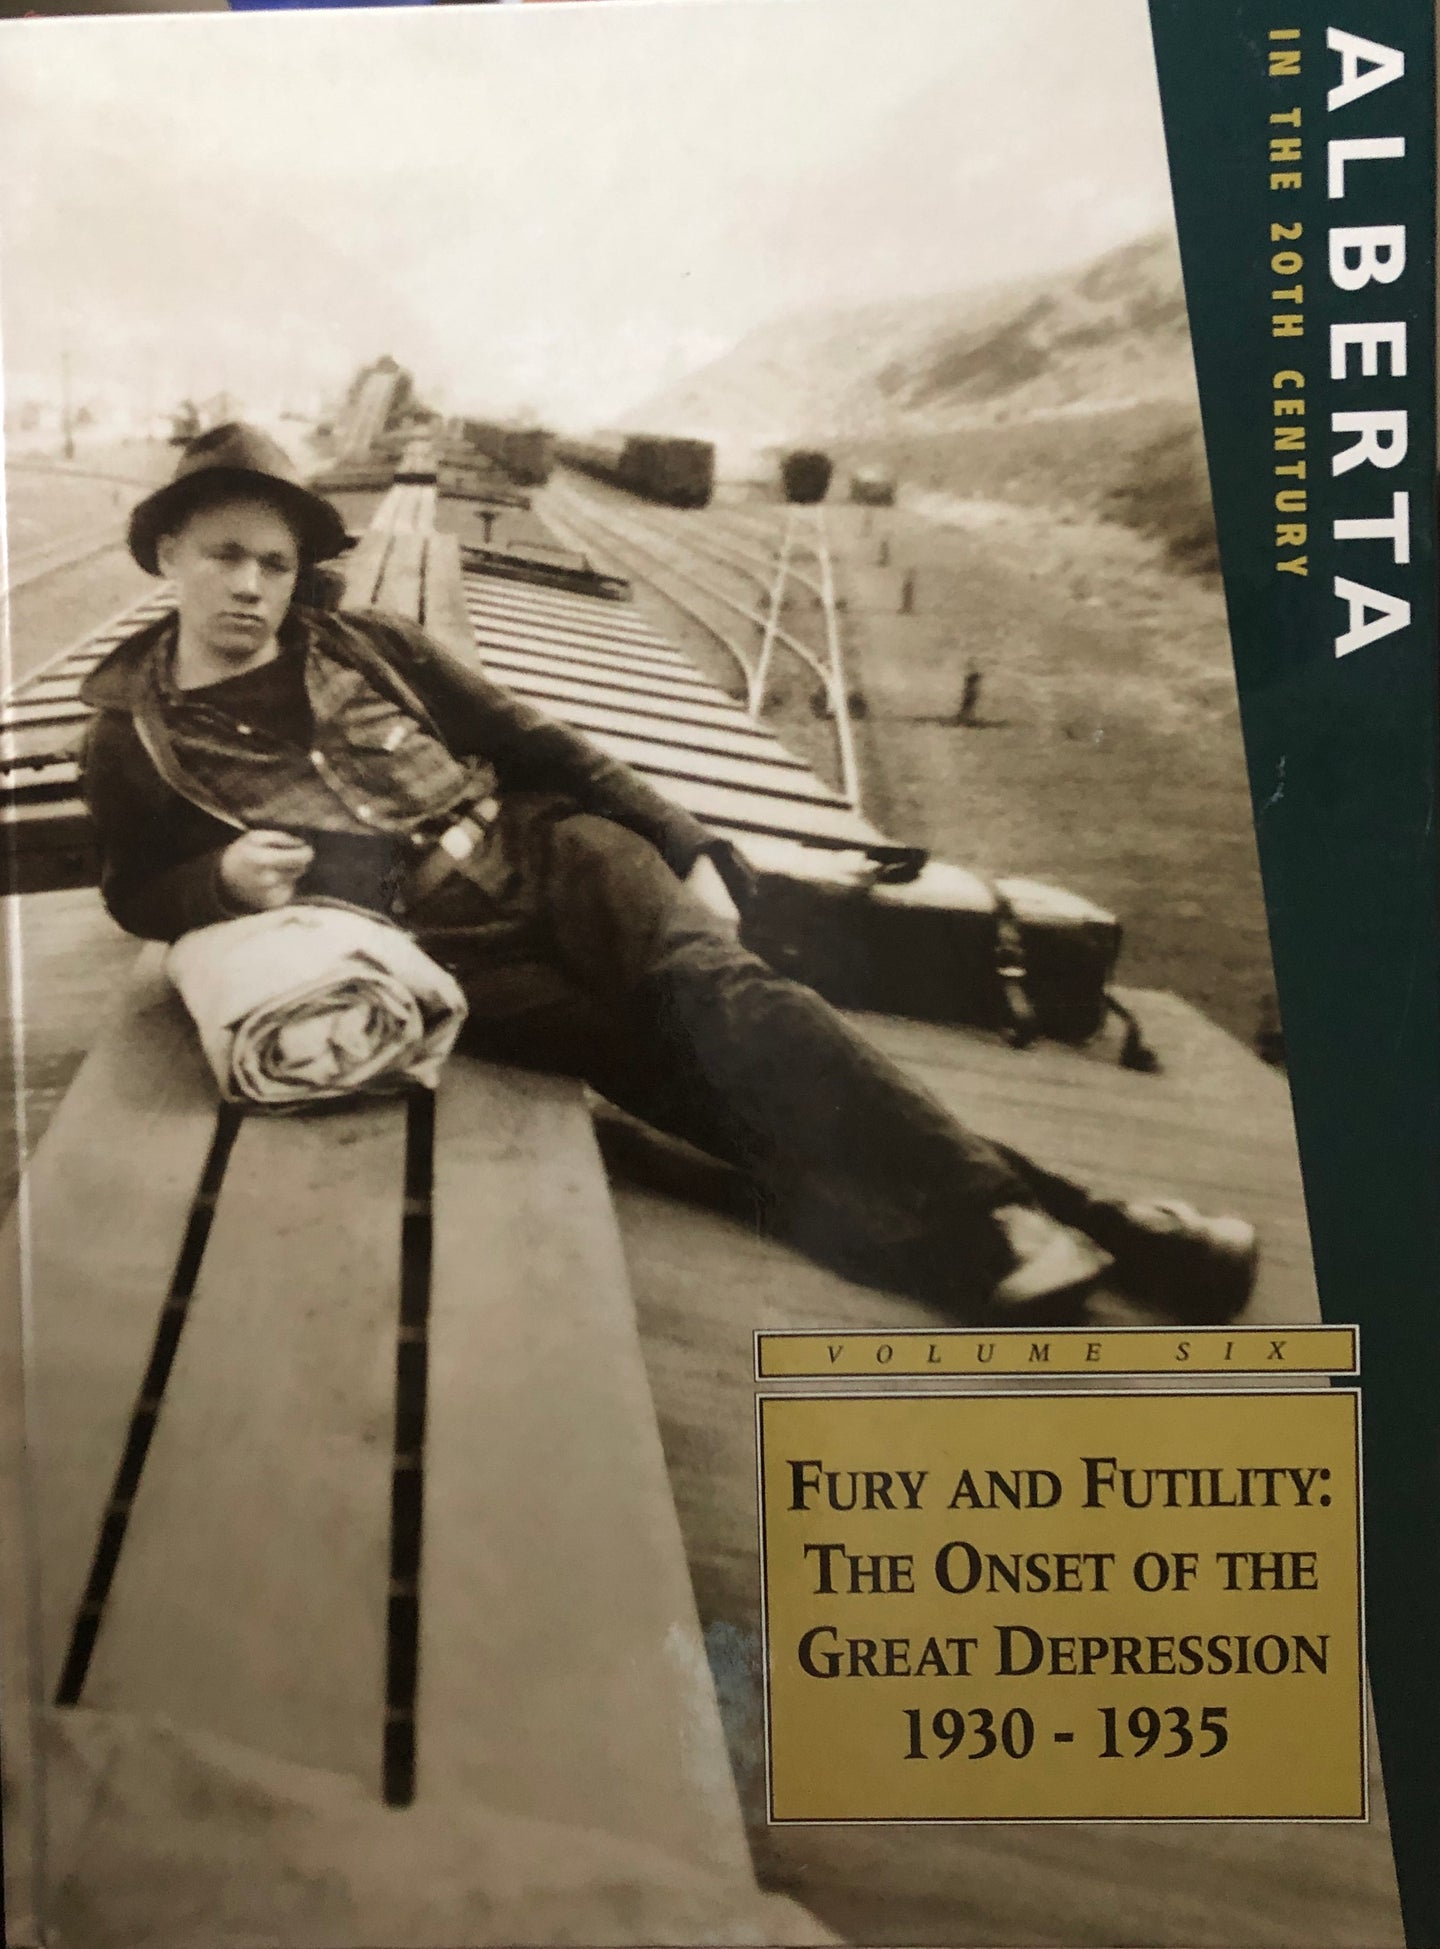 Alberta in the 20th Century (Vol.6): Fury and Futility: The Onset of The Great Depression 1930-1935